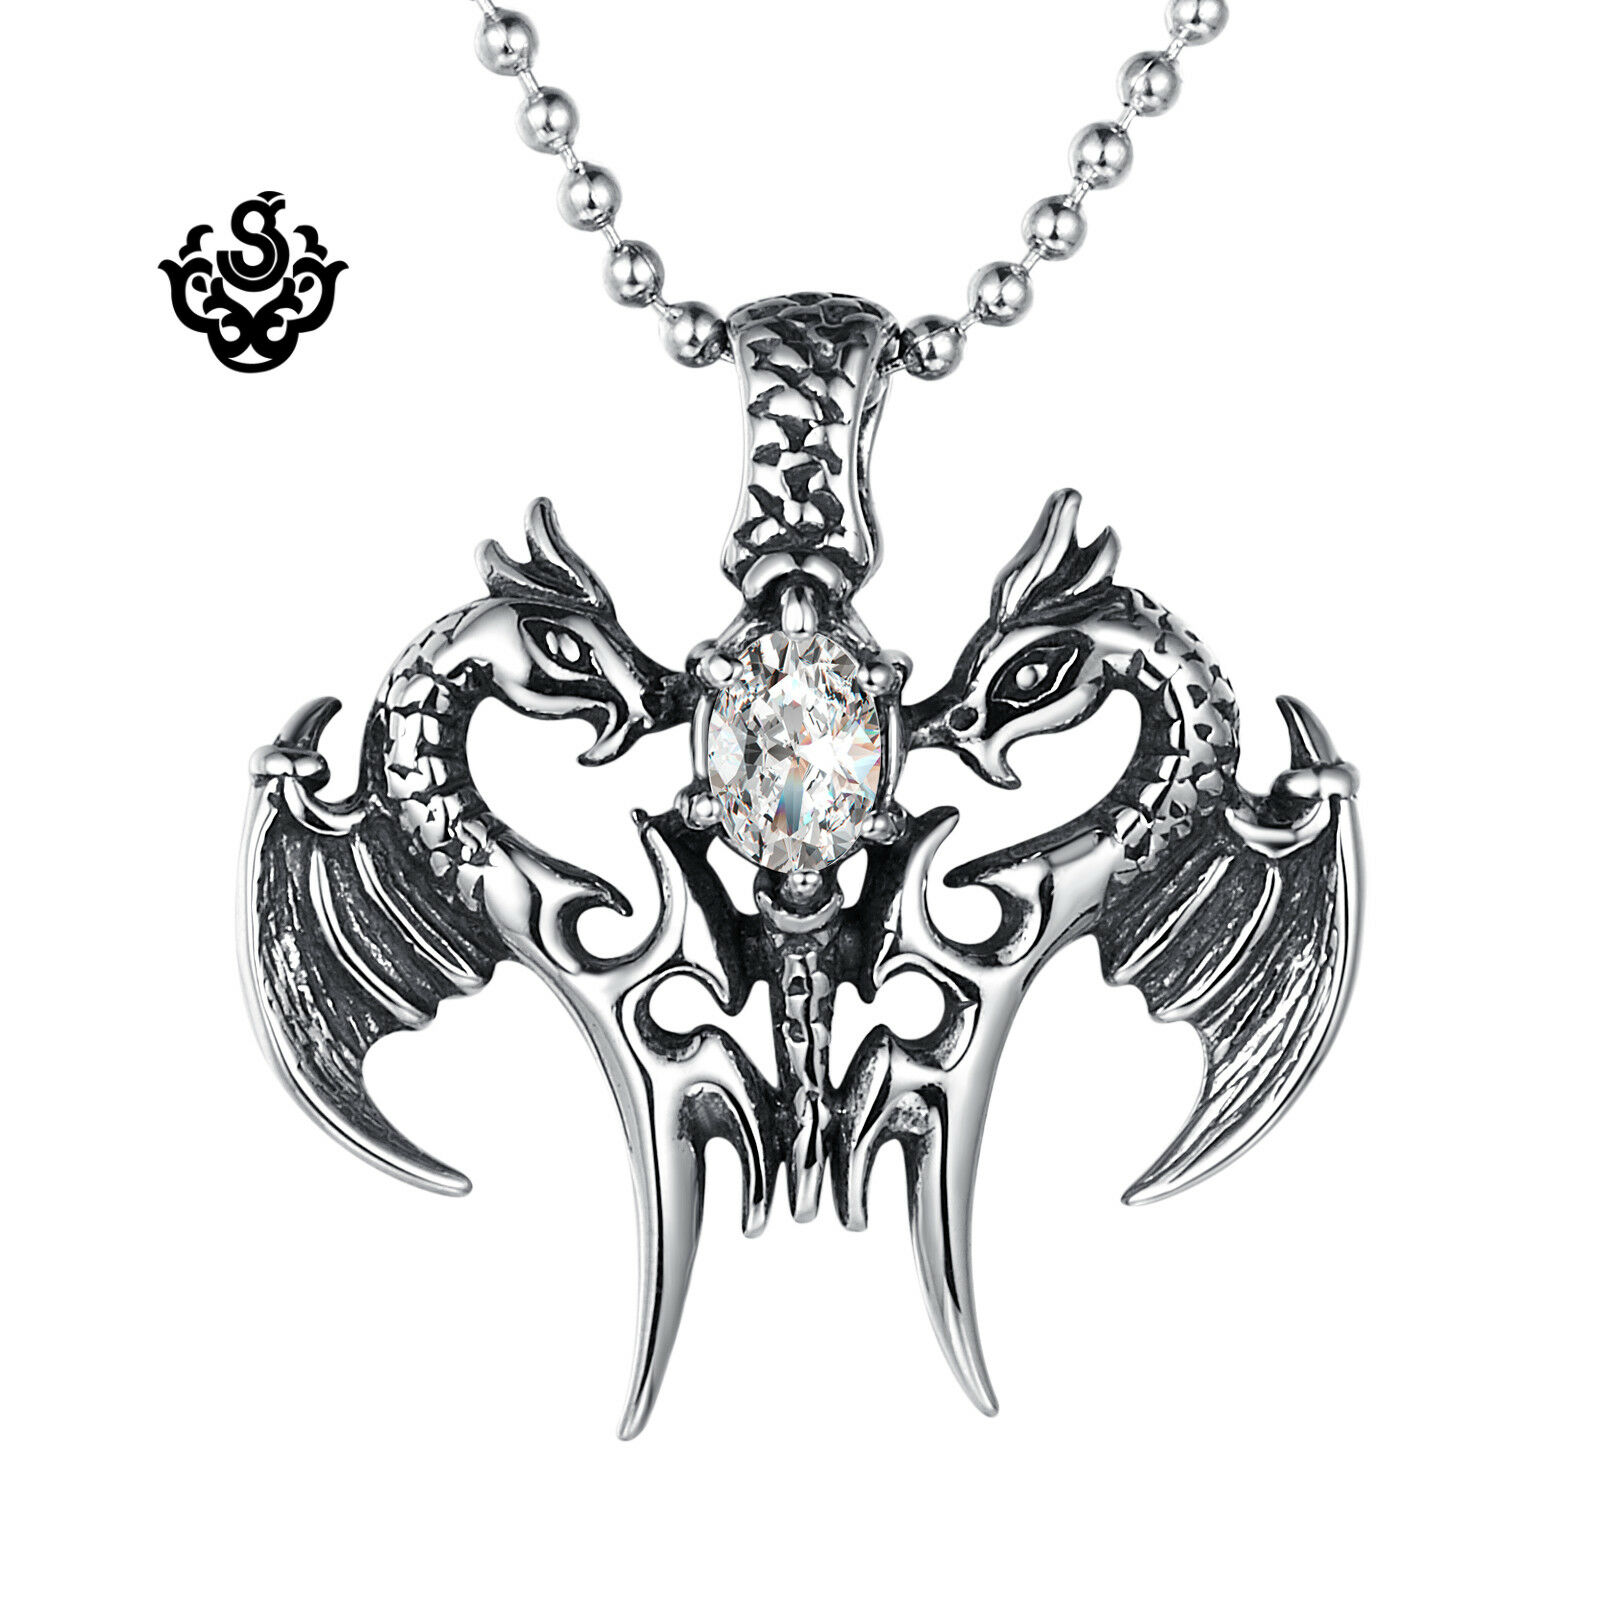 Silver pendant vintage style stainless steel dragon sword cz chain necklace 60cm